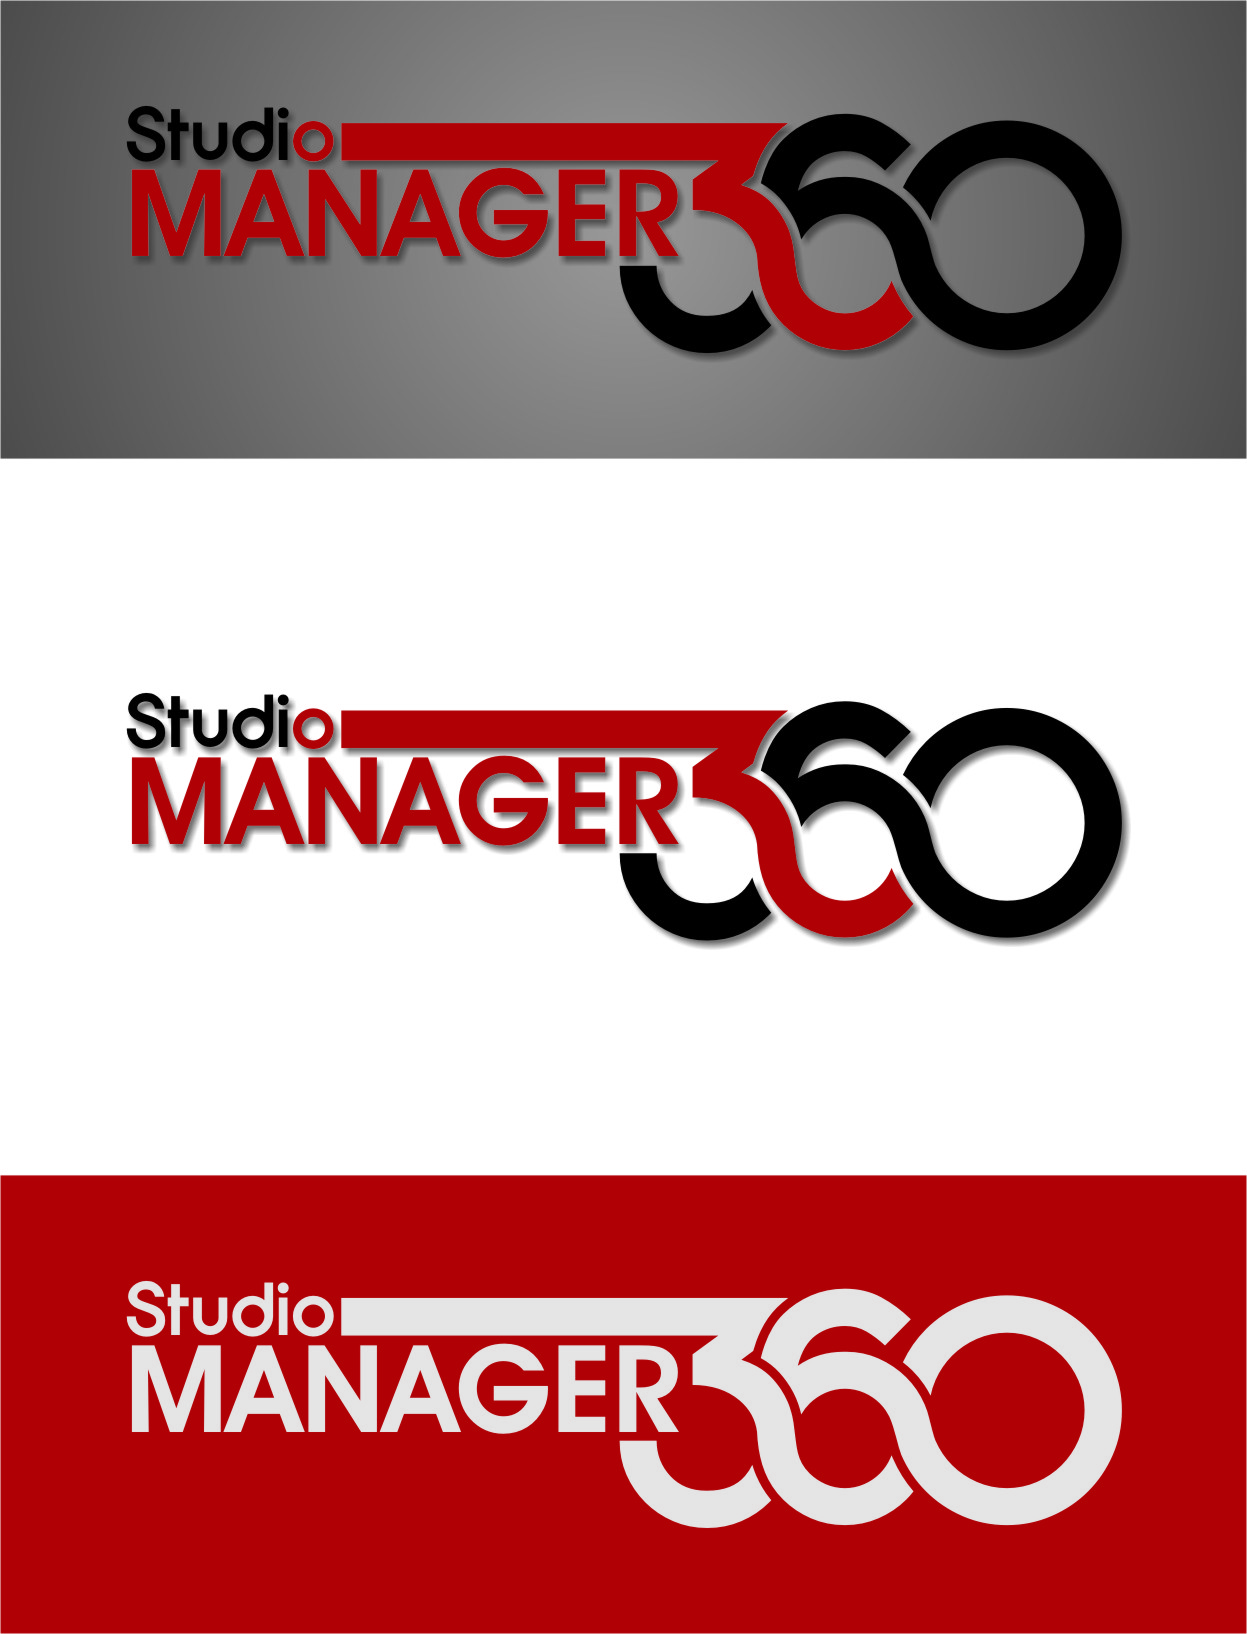 Logo Design by Ngepet_art - Entry No. 49 in the Logo Design Contest Unique Logo Design Wanted for Studio Manager 360.